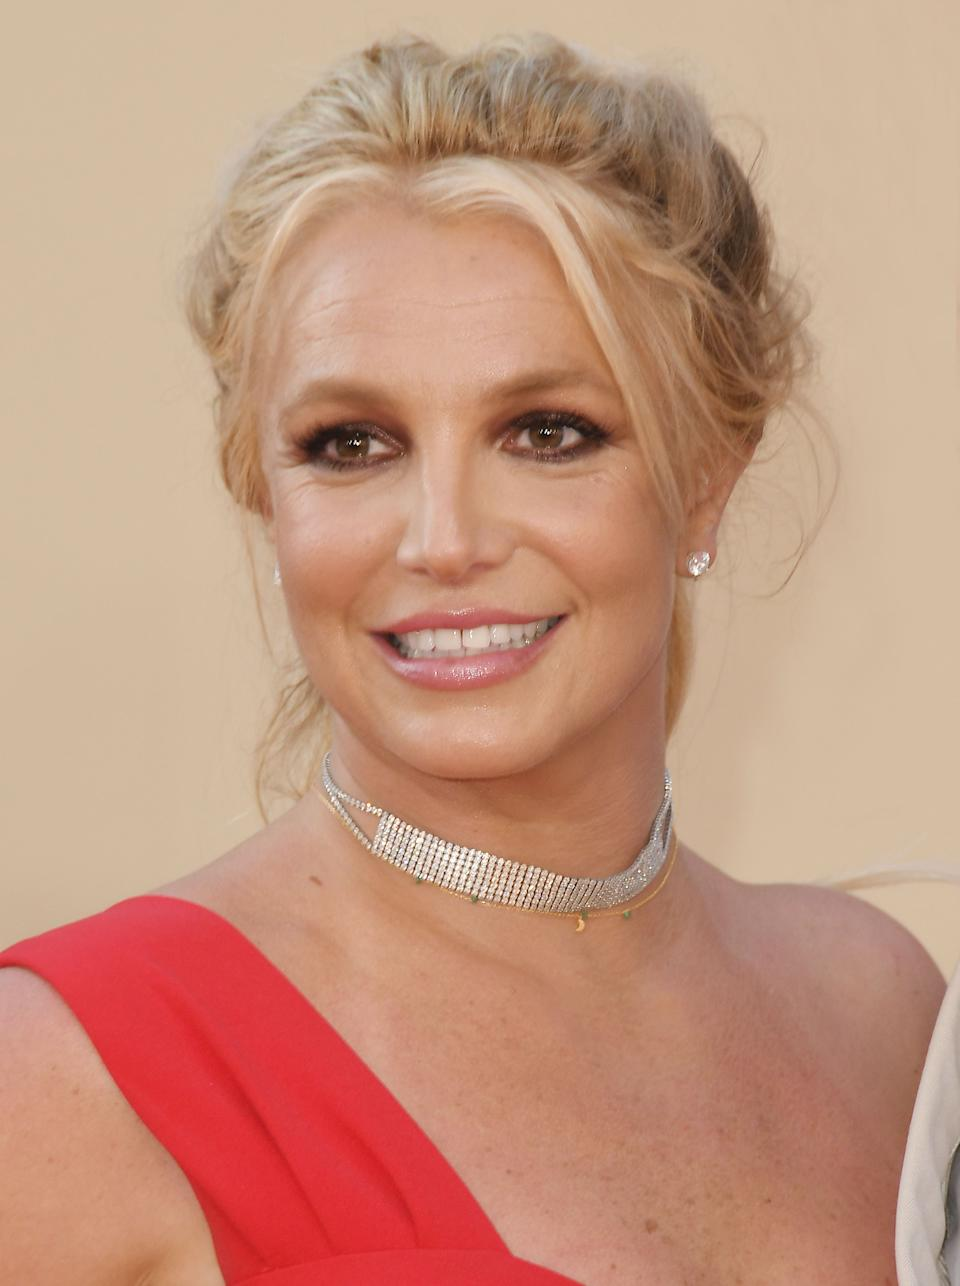 Britney Spears arrives at the ONCE UPON A TIME...IN HOLLYWOOD World Premiere held at the TCL Chinese Theatre in Hollywood, CA on Monday, July 22, 2019. (Photo By Sthanlee B. Mirador/Sipa USA)